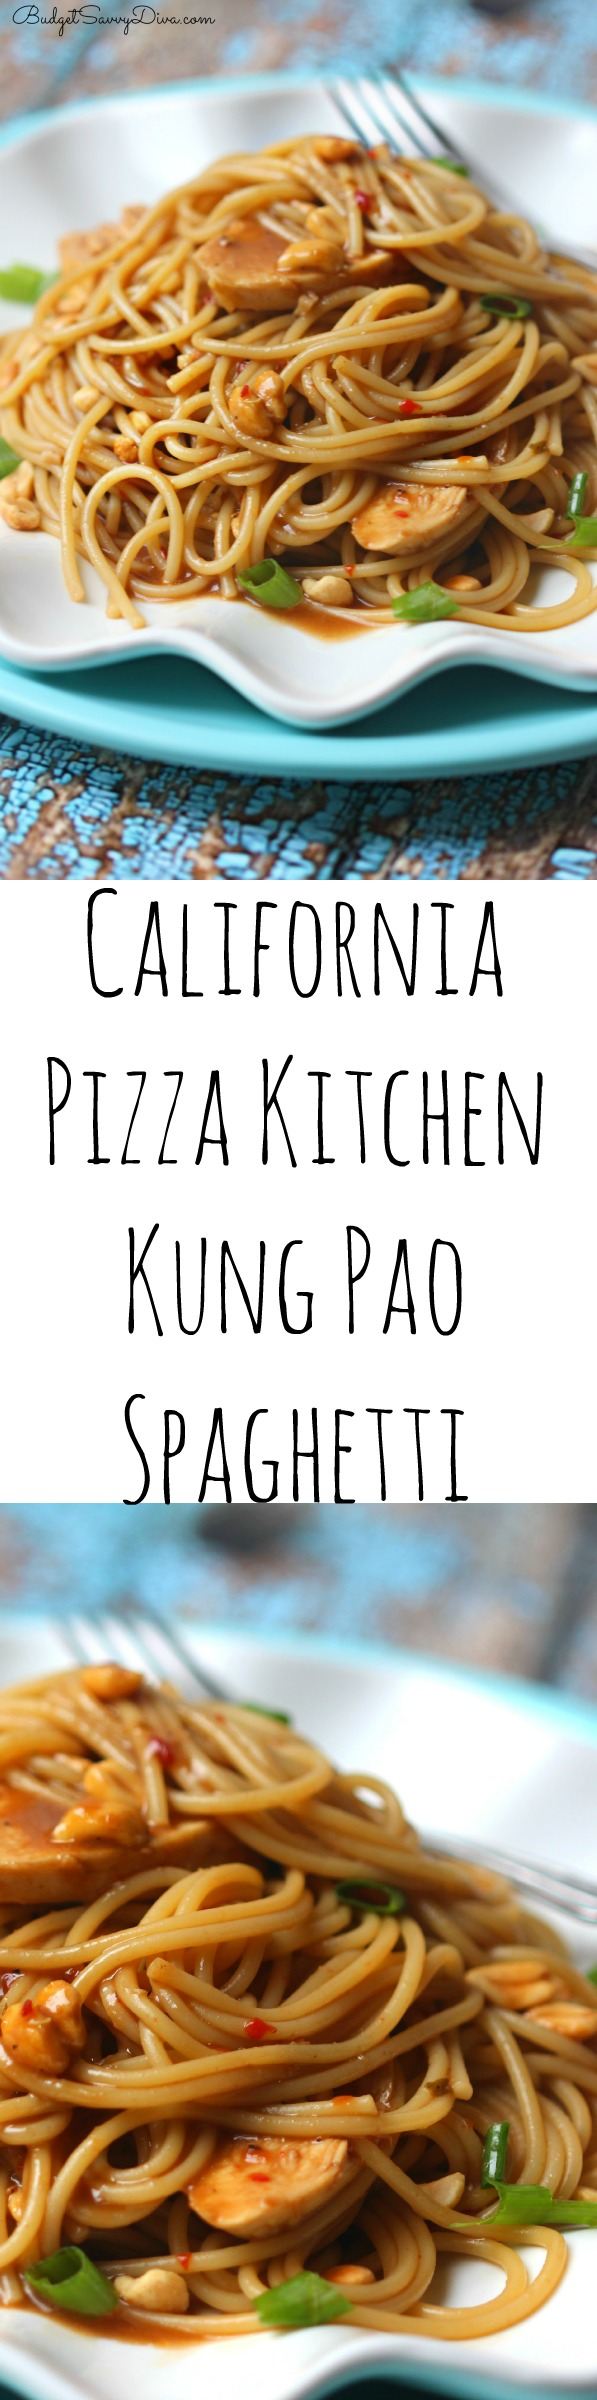 California\'s Pizza Kitchen Kung Pao Spaghetti Recipe | Budget Savvy Diva